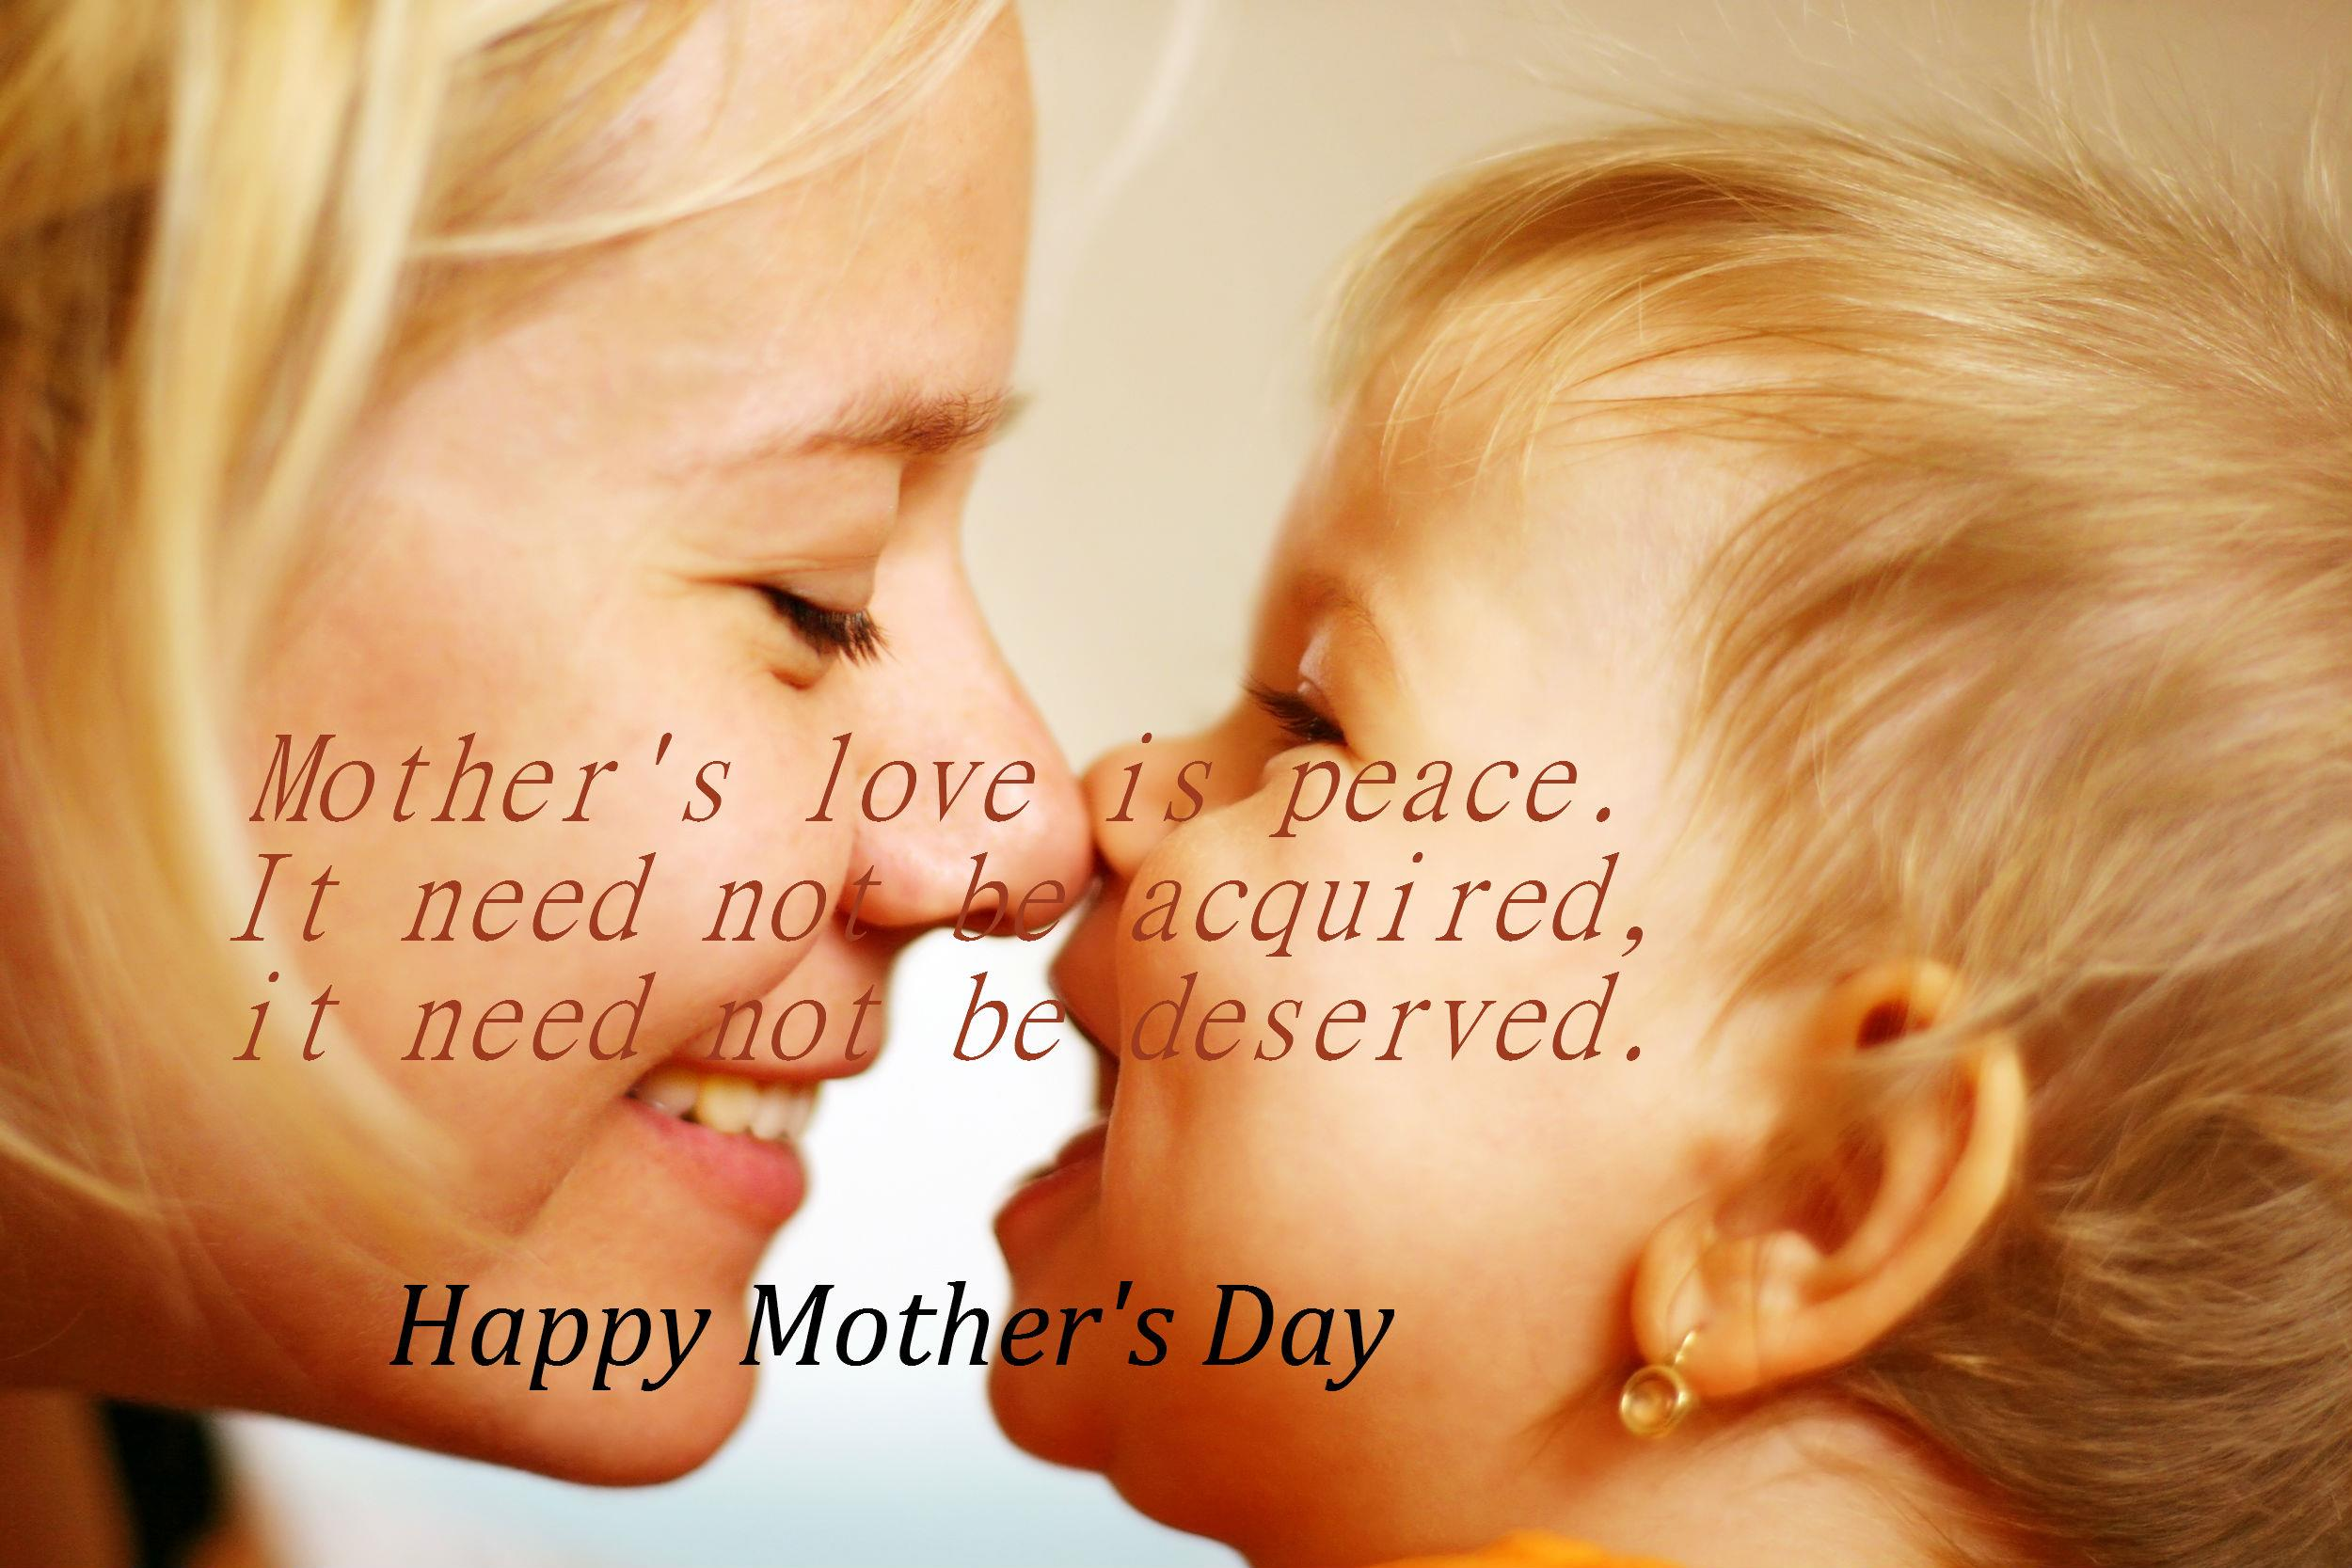 Happy Mother's Day - Mother's love is peace. It need not be acquired ...